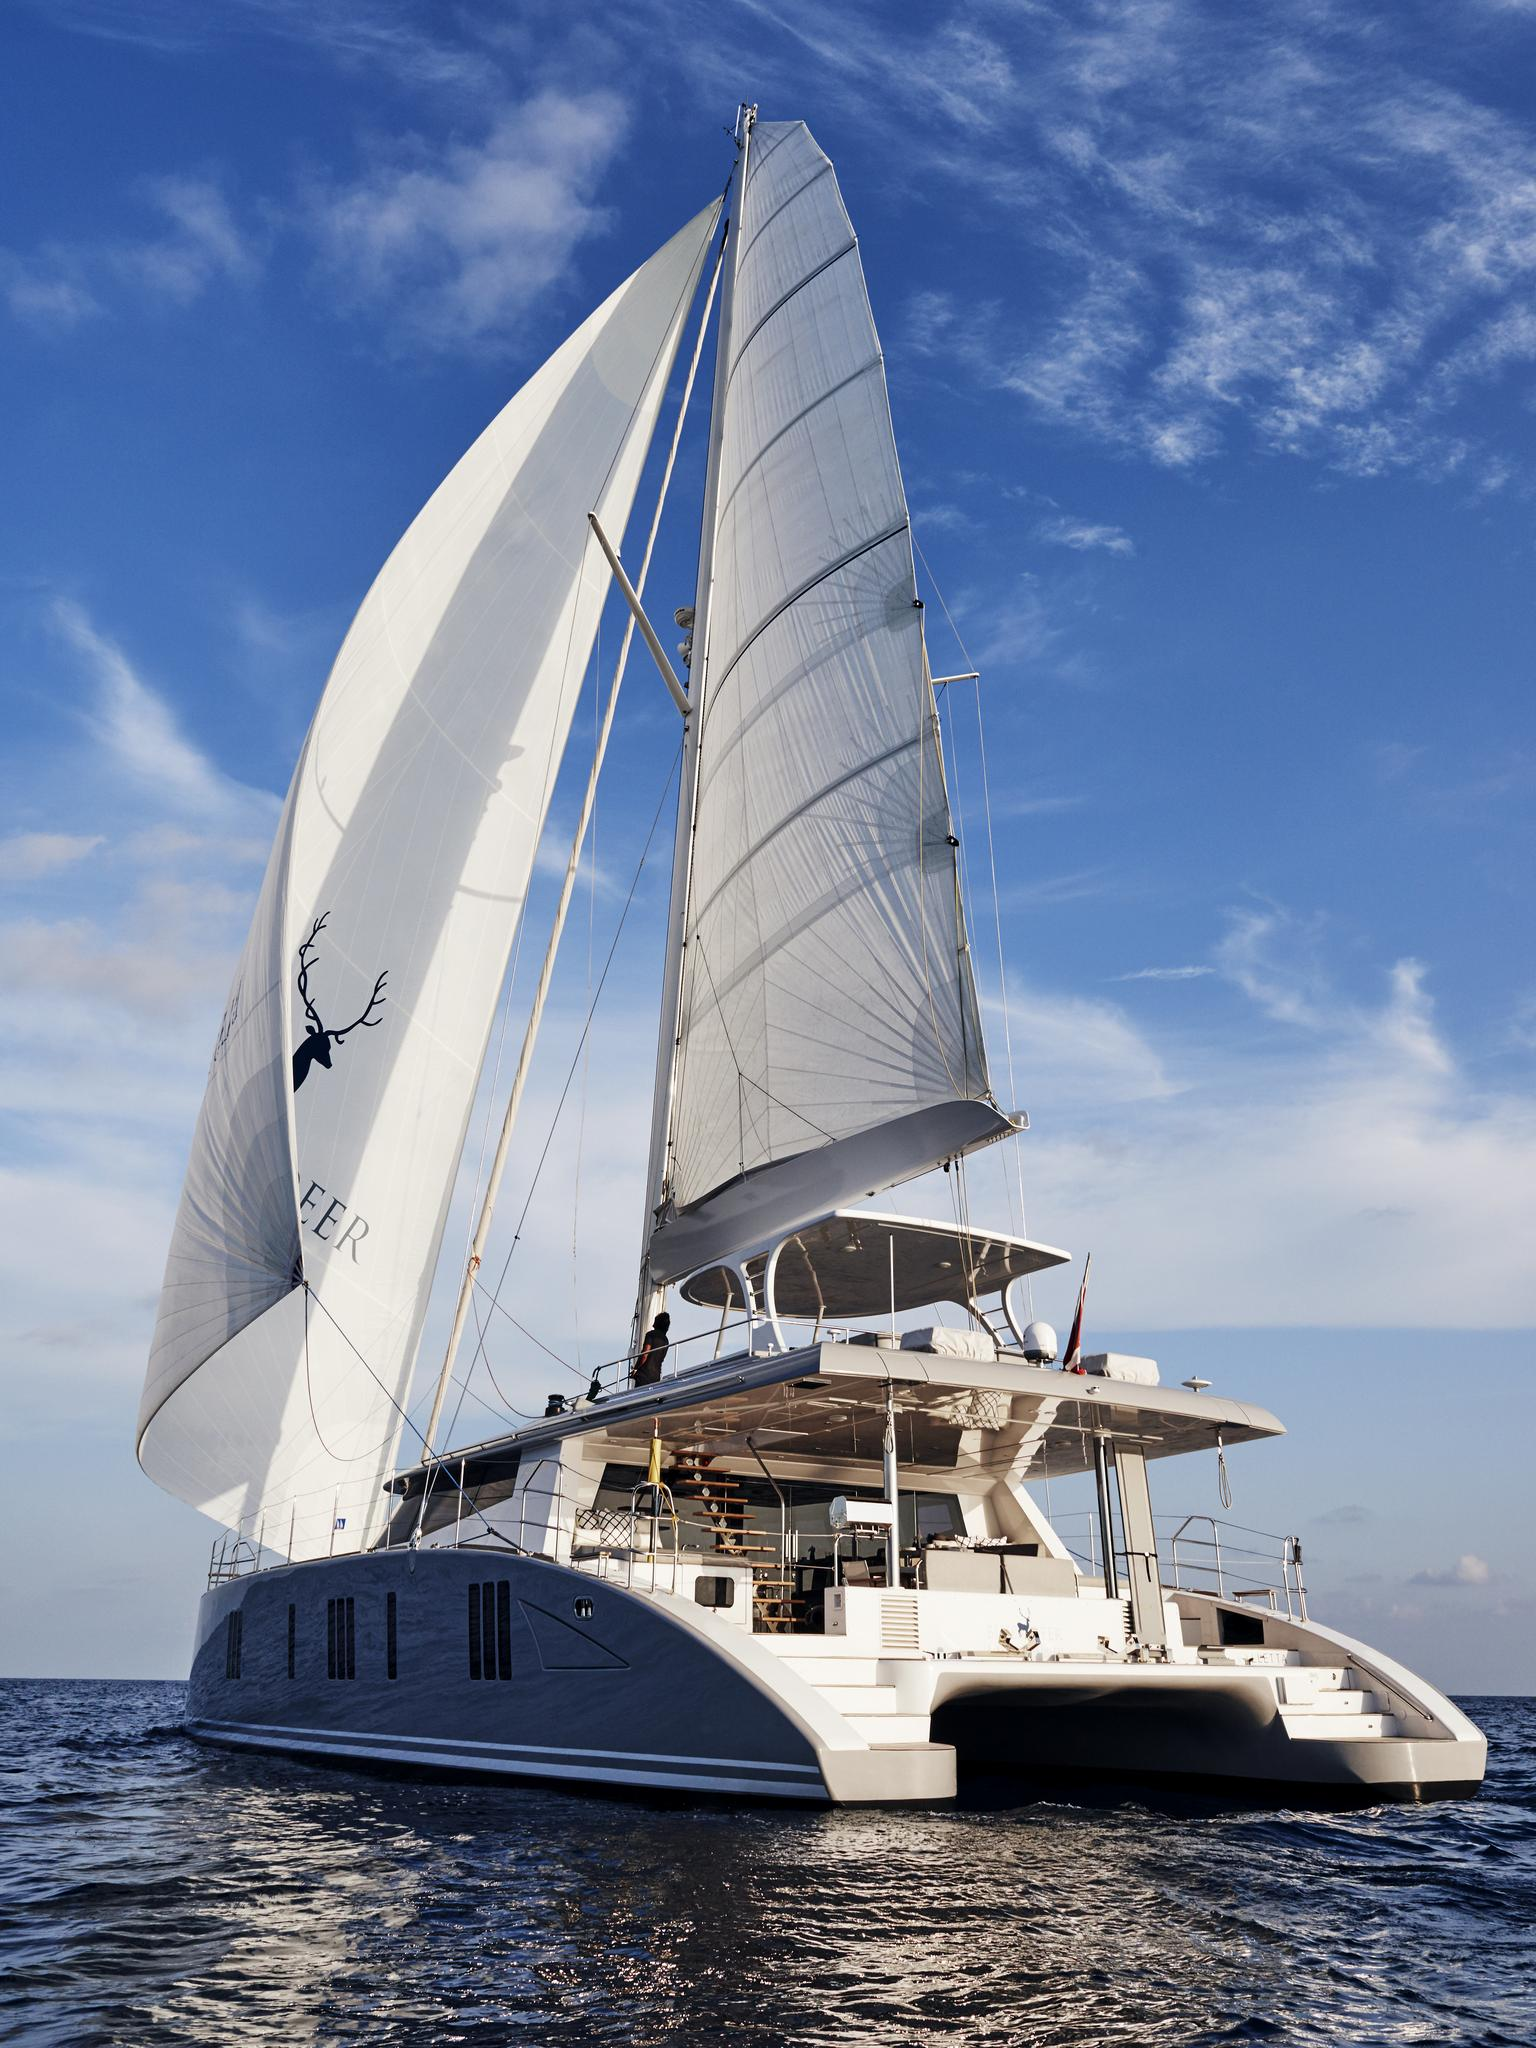 Catamarans CHRISSY, Manufacturer: SUNREEF YACHTS, Model Year: 2017, Length: 74ft, Model: Sunreef 74, Condition: Brochure, Listing Status: NOT ACTIVE, Price: USD